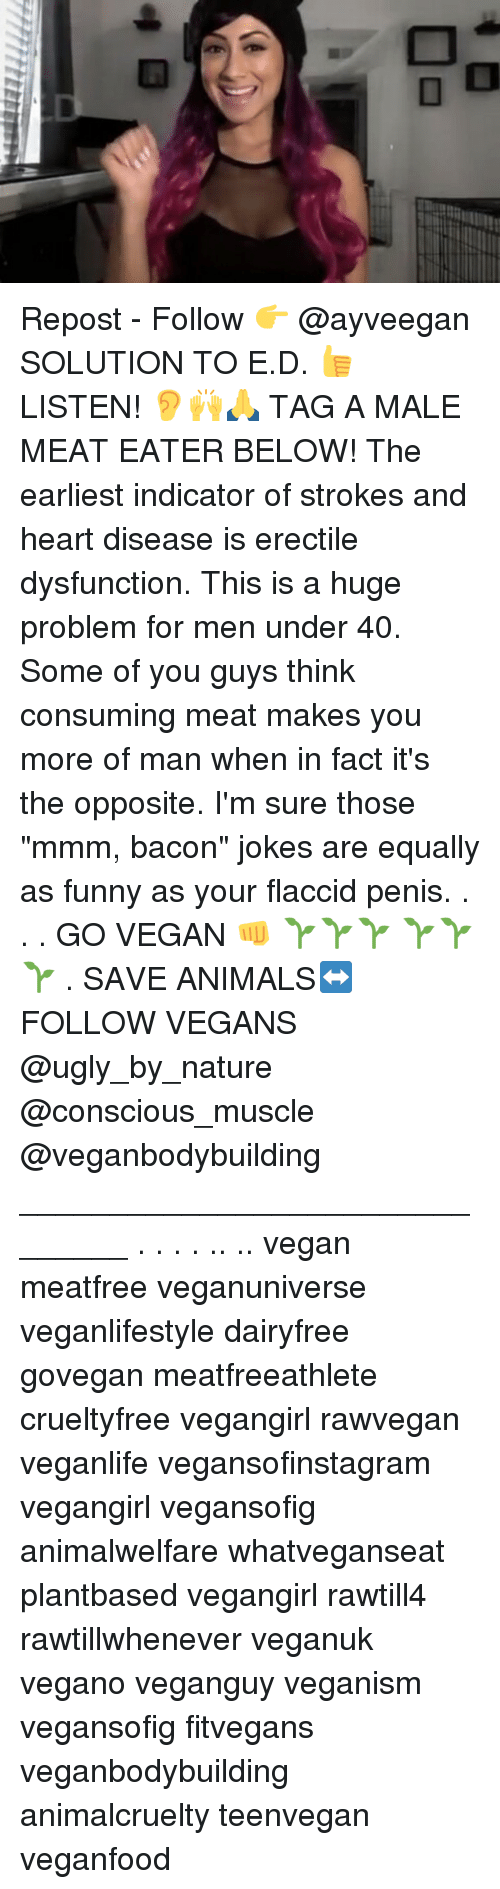 """Bacon Jokes: ■和 Repost - Follow 👉 @ayveegan SOLUTION TO E.D. 👍 LISTEN! 👂🙌🙏 TAG A MALE MEAT EATER BELOW! The earliest indicator of strokes and heart disease is erectile dysfunction. This is a huge problem for men under 40. Some of you guys think consuming meat makes you more of man when in fact it's the opposite. I'm sure those """"mmm, bacon"""" jokes are equally as funny as your flaccid penis. . . . GO VEGAN 👊 🌱🌱🌱 🌱🌱 🌱 . SAVE ANIMALS↔FOLLOW VEGANS @ugly_by_nature @conscious_muscle @veganbodybuilding _______________________________ . . . . .. .. vegan meatfree veganuniverse veganlifestyle dairyfree govegan meatfreeathlete crueltyfree vegangirl rawvegan veganlife vegansofinstagram vegangirl vegansofig animalwelfare whatveganseat plantbased vegangirl rawtill4 rawtillwhenever veganuk vegano veganguy veganism vegansofig fitvegans veganbodybuilding animalcruelty teenvegan veganfood"""